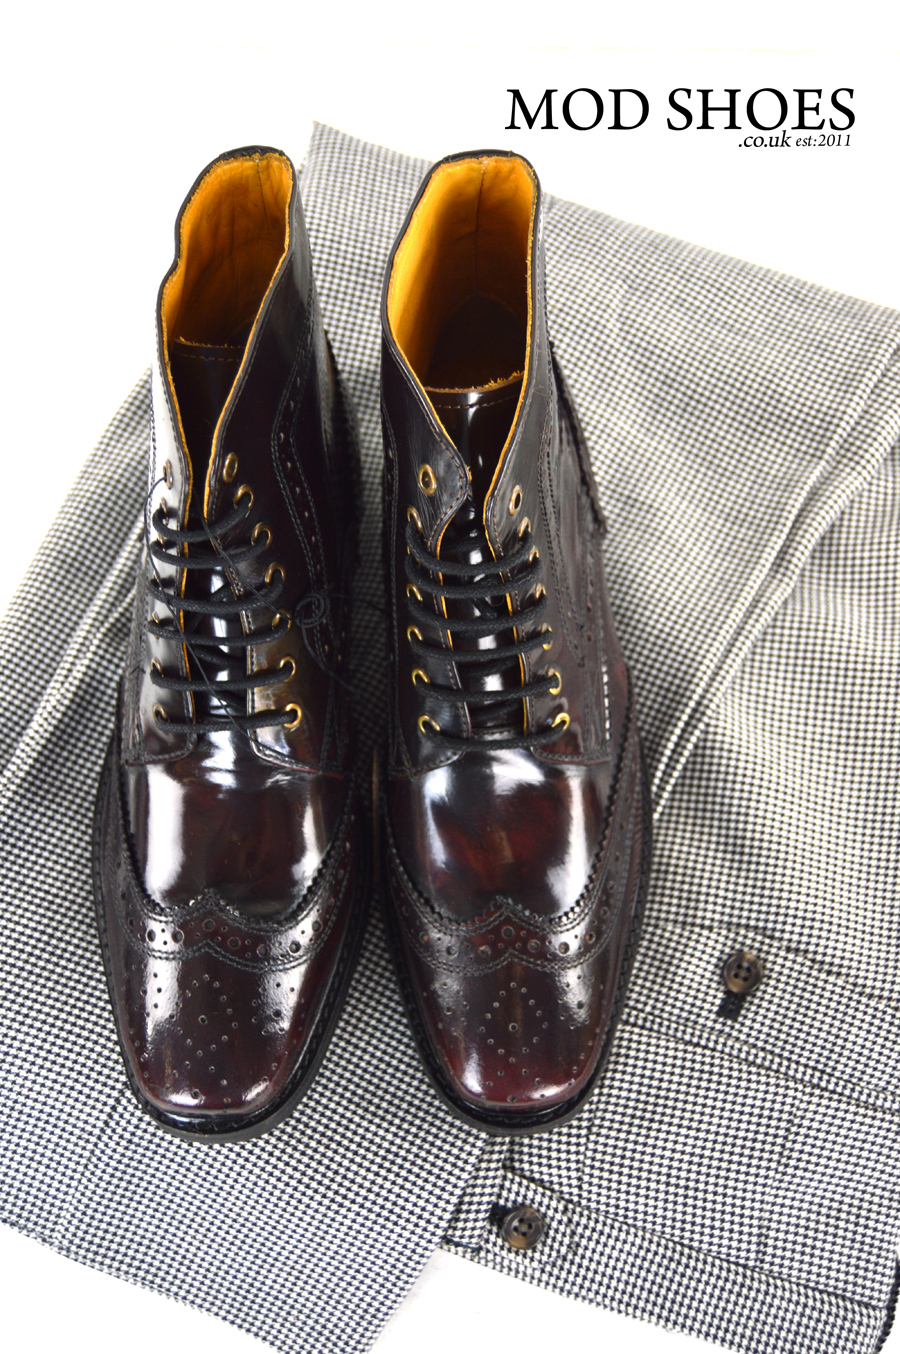 mod-shoes-landslides-oxblood-brogue-boots--boot-peaky-blinders-09